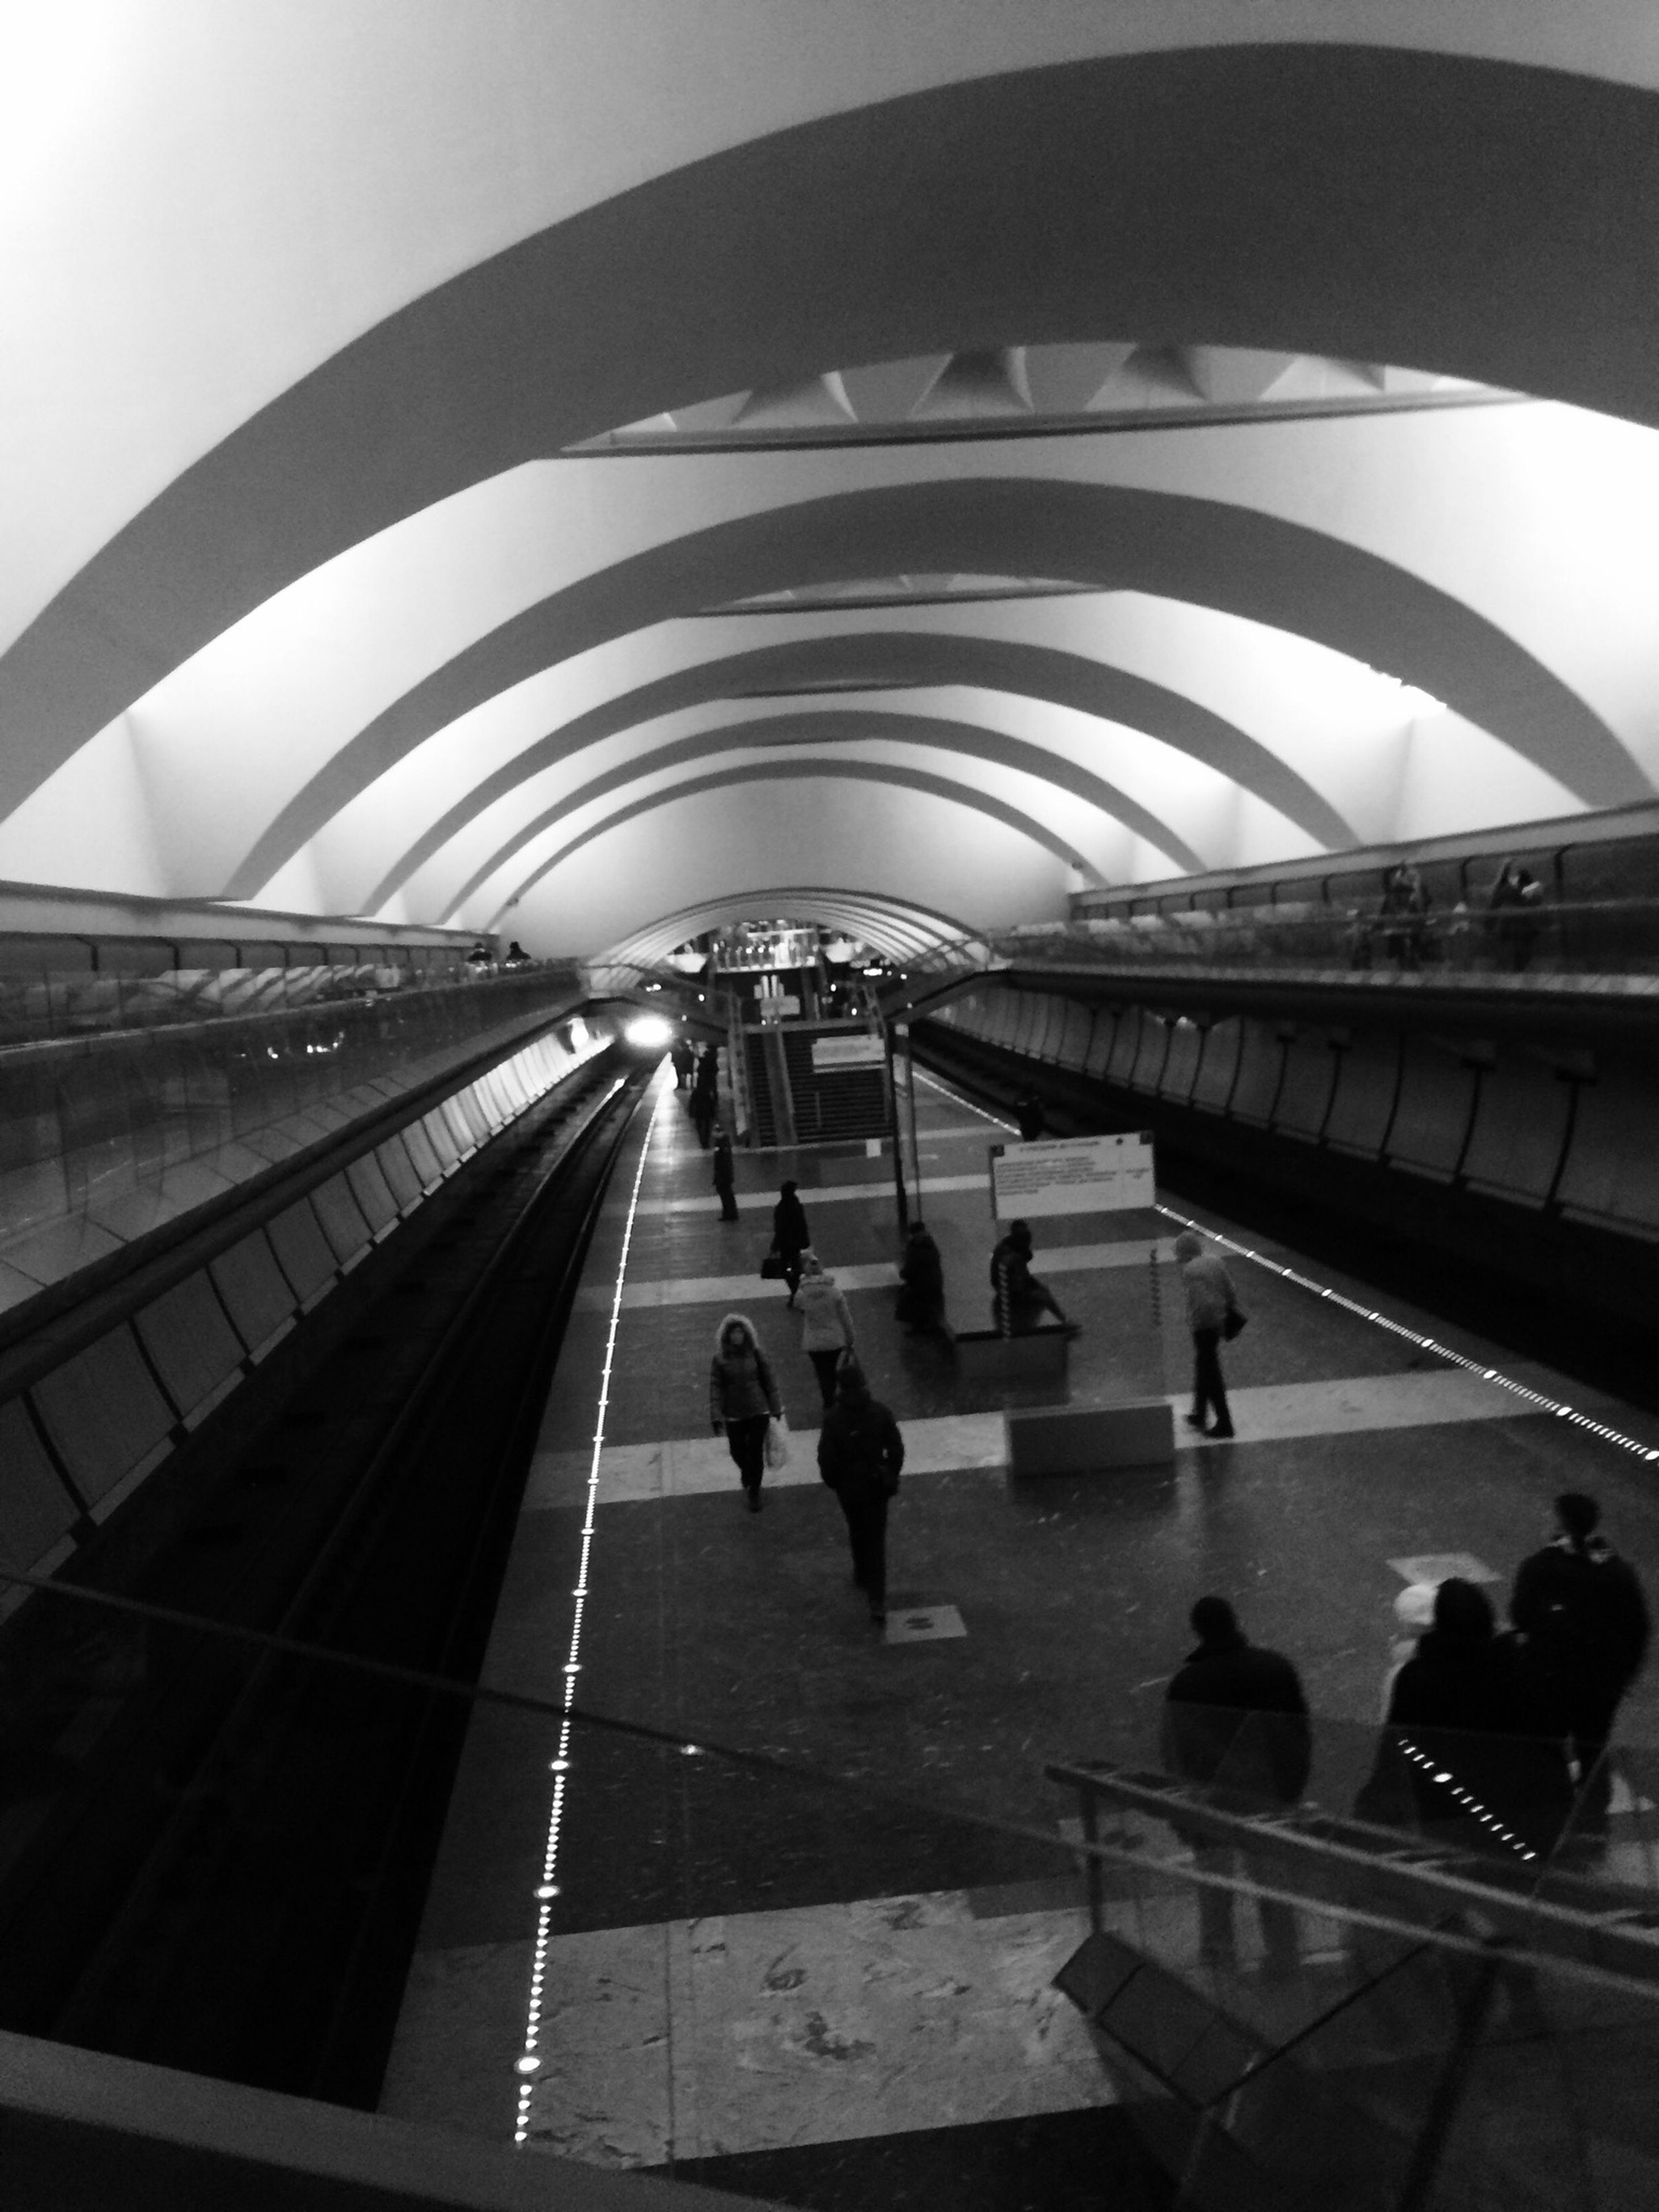 indoors, ceiling, large group of people, architecture, railroad station, built structure, travel, person, men, public transportation, transportation building - type of building, incidental people, subway station, modern, illuminated, railroad station platform, transportation, lifestyles, walking